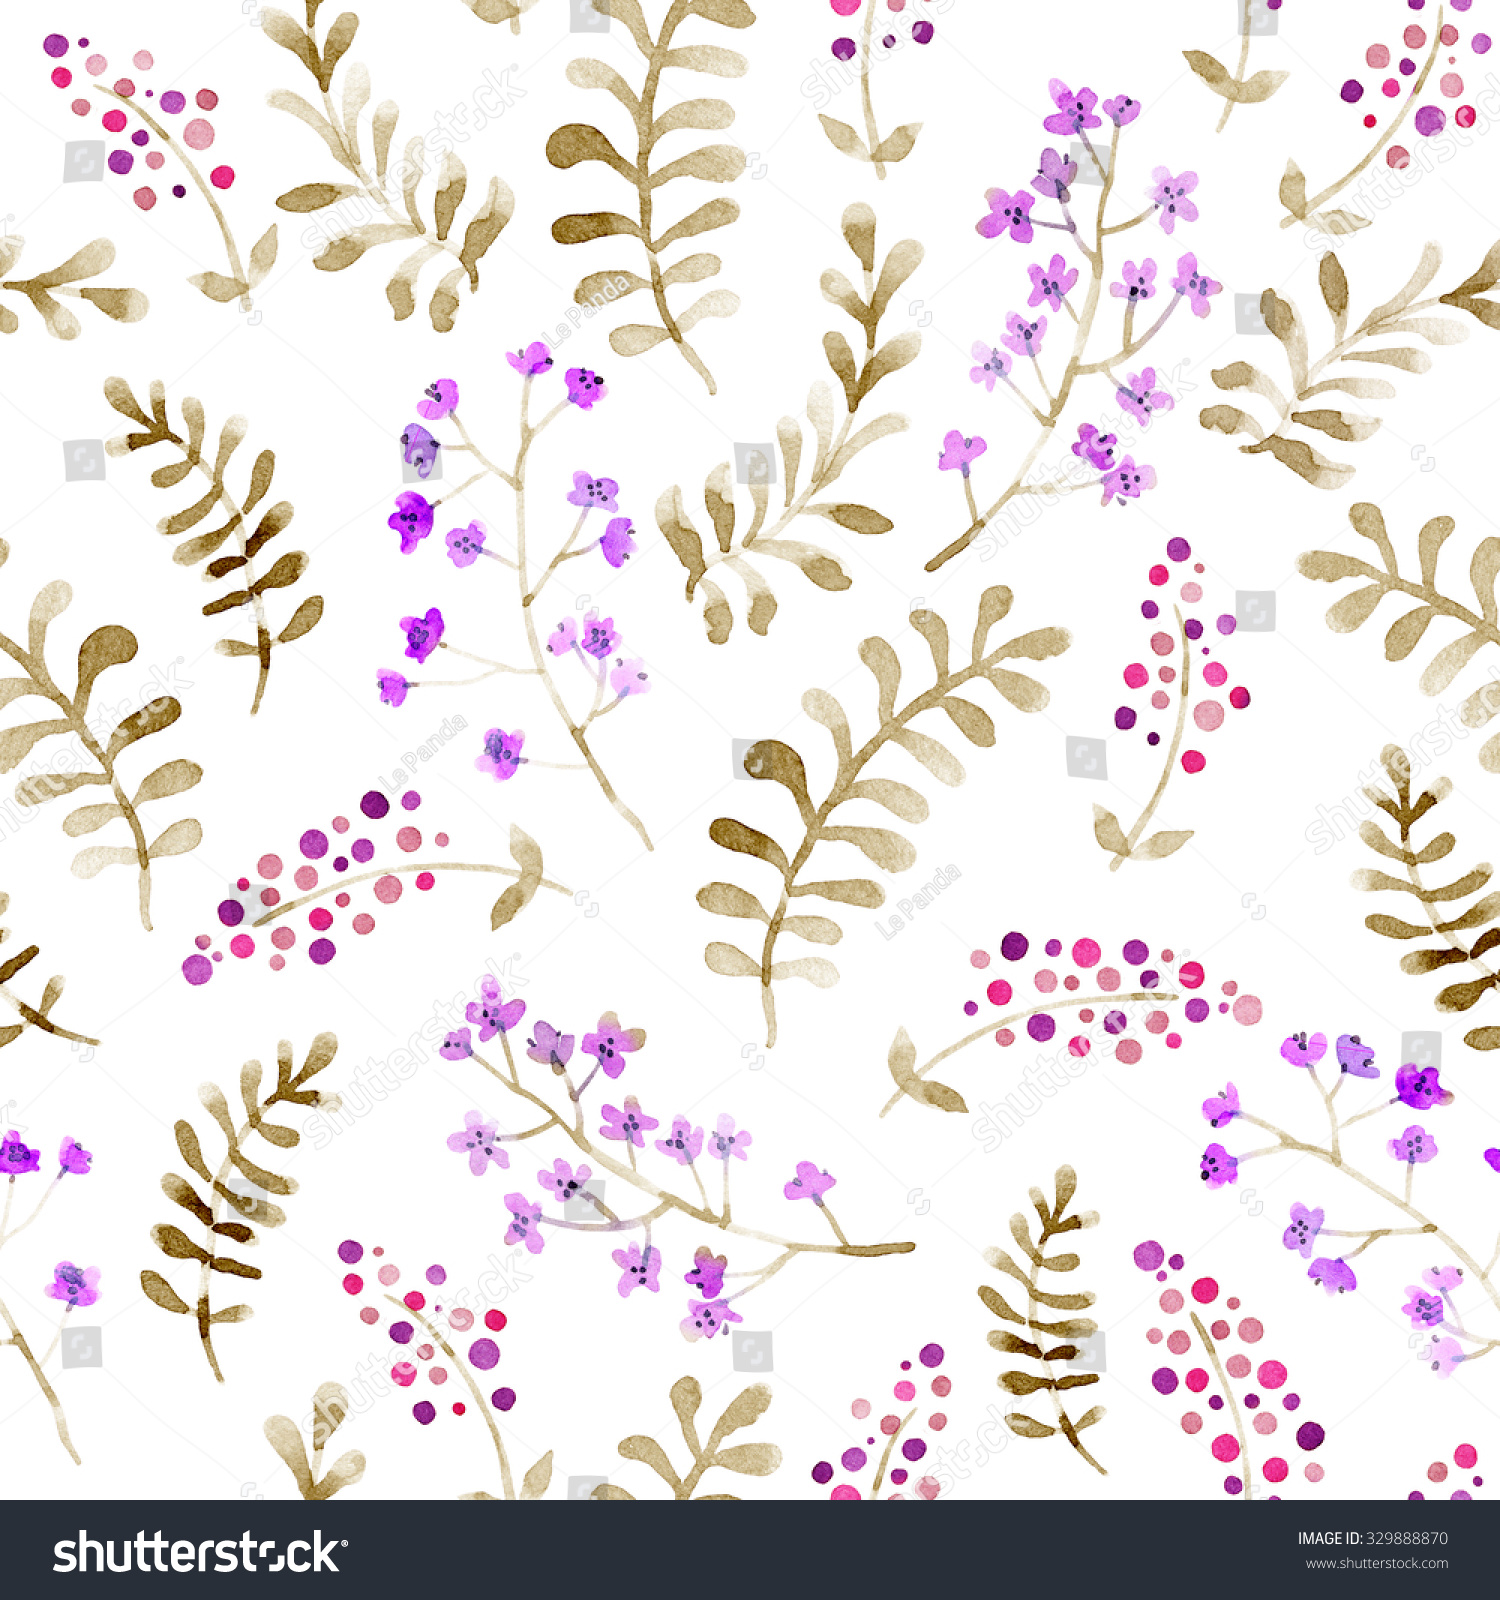 2015 Ditsy Floral Design: Cute Forest Repeating Pattern Ditsy Flowers Stock